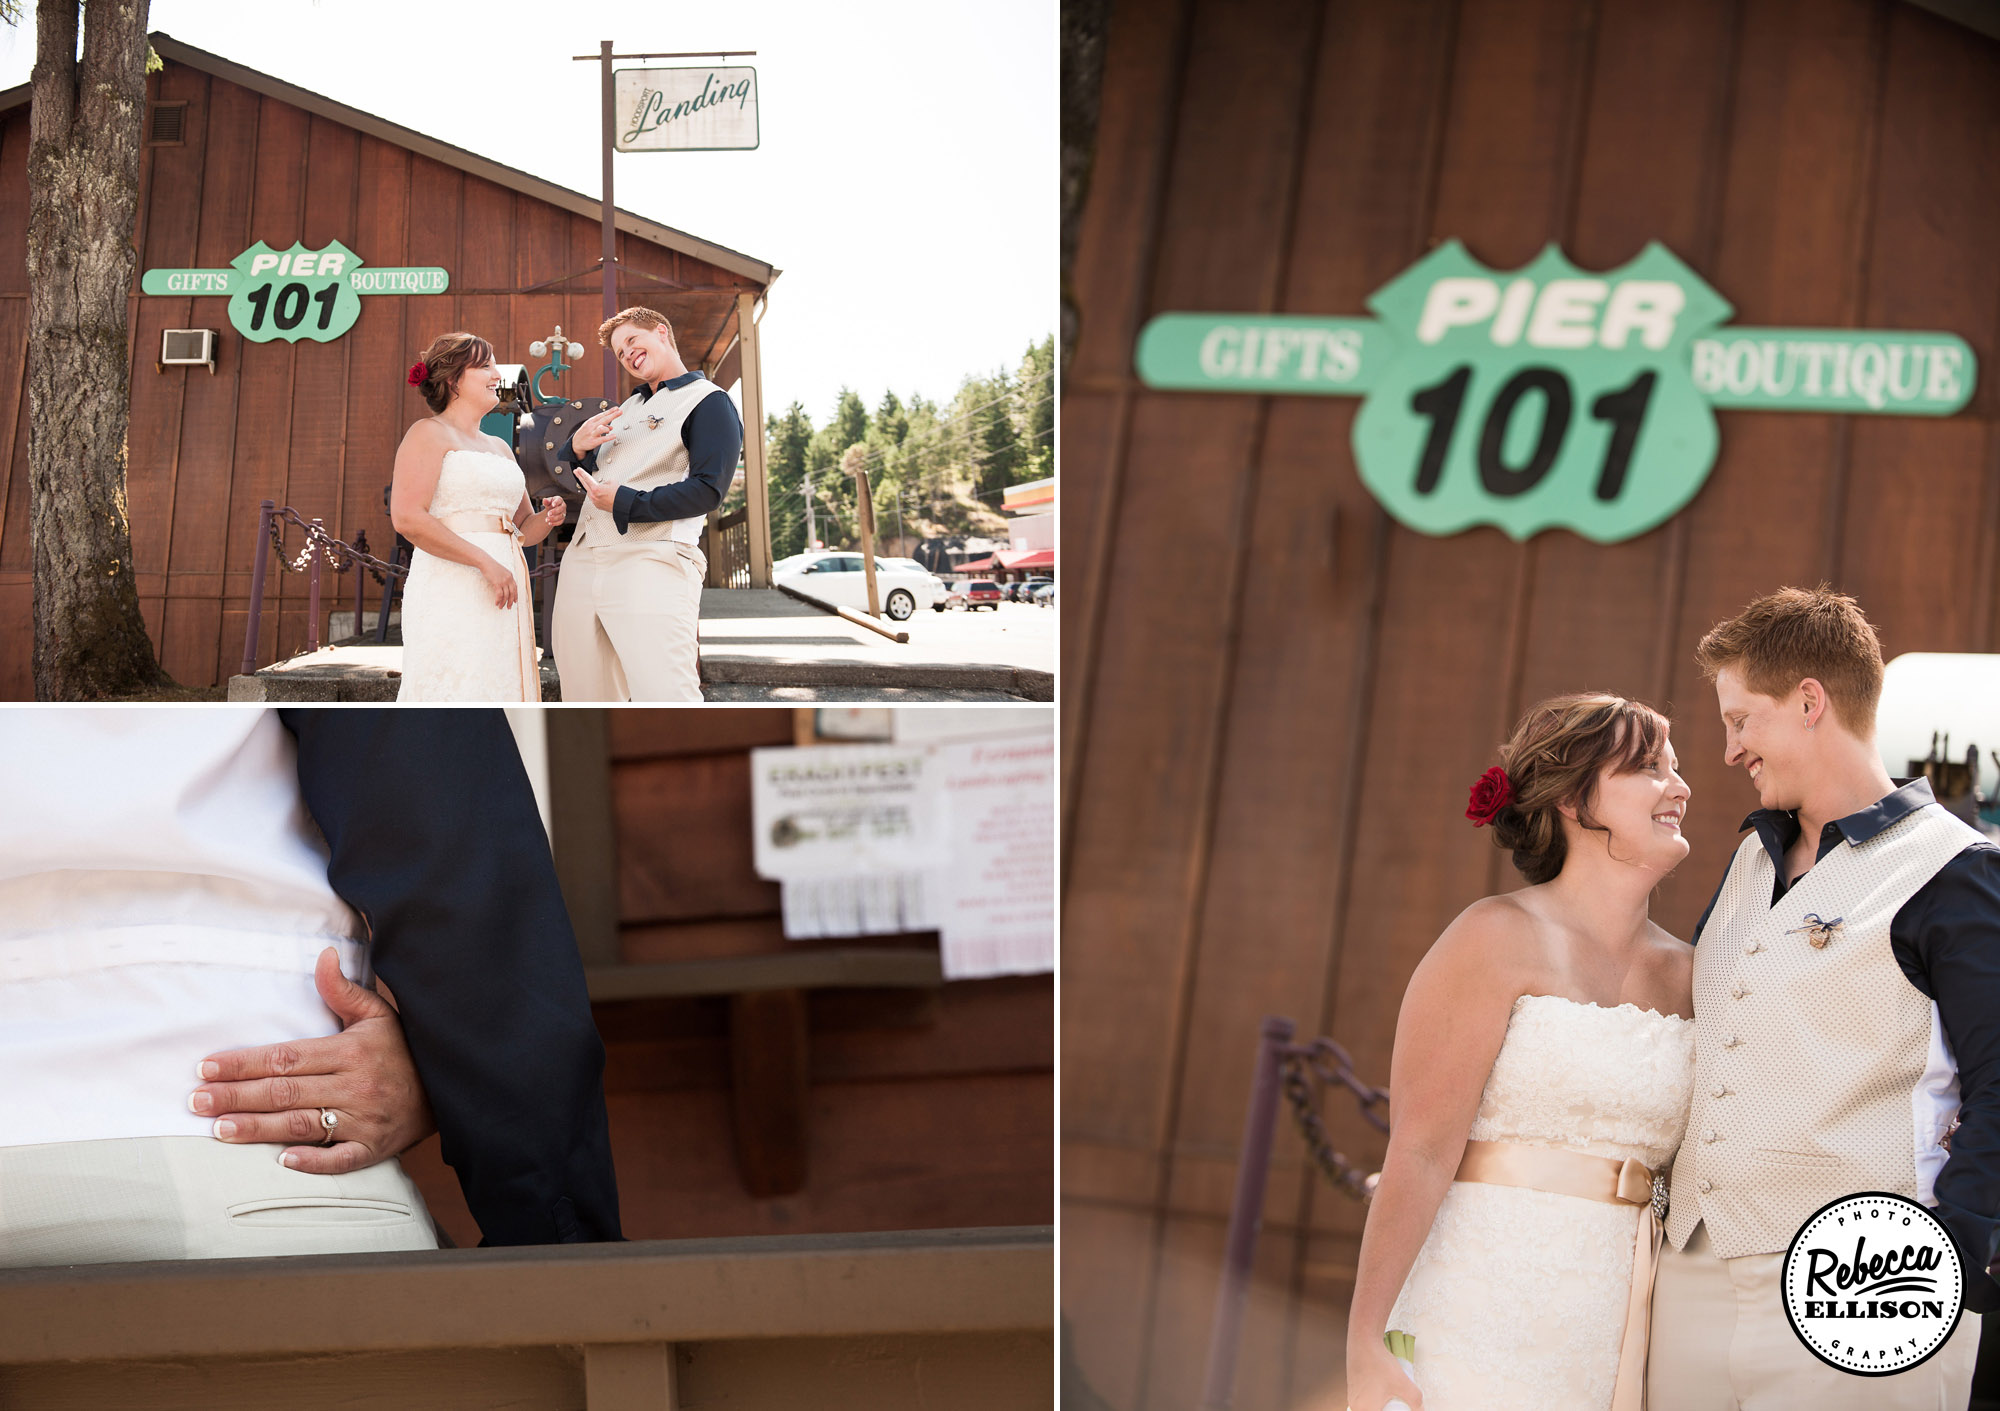 Beachfront wedding portraits in front of a boat house and vintage road signs photographed by Seattle wedding photographer Rebecca Ellison